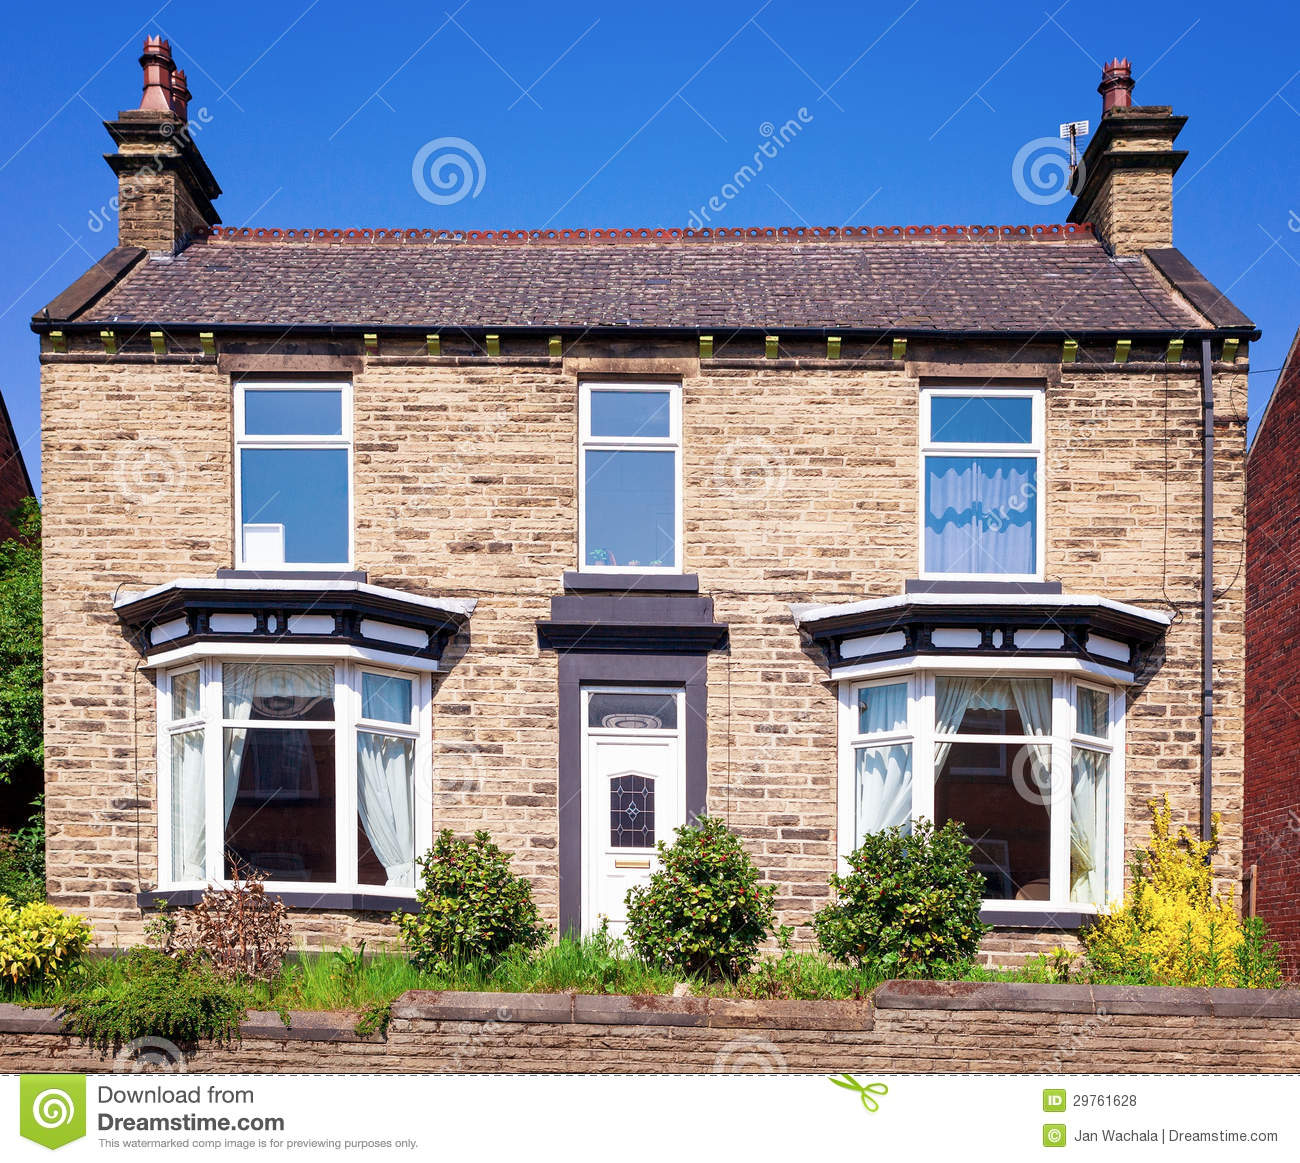 Old english house royalty free stock photos image 29761628 for Classic english house